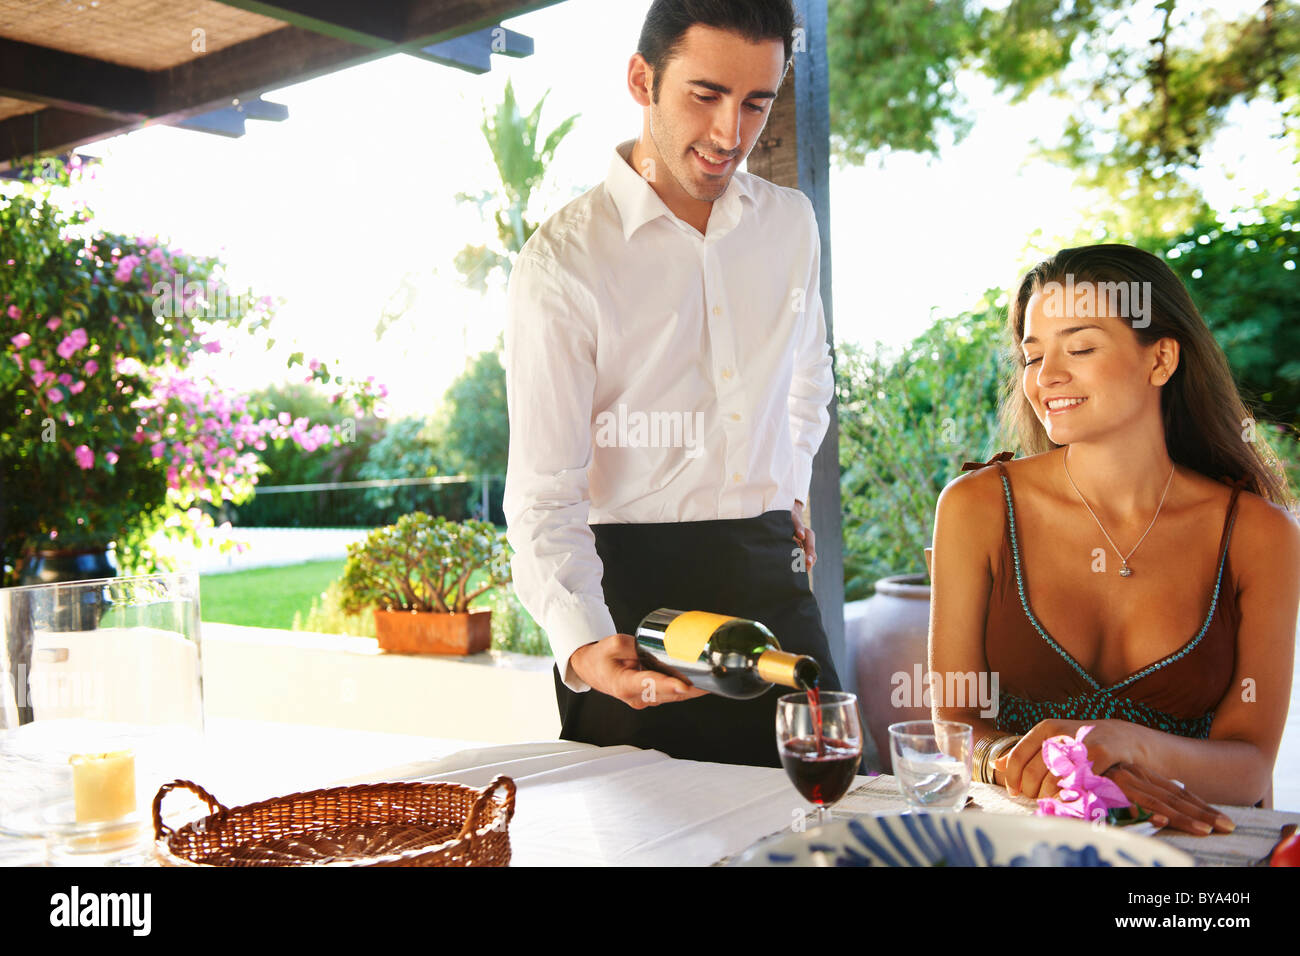 Lady Waiter Stock Photos Lady Waiter Stock Images Alamy